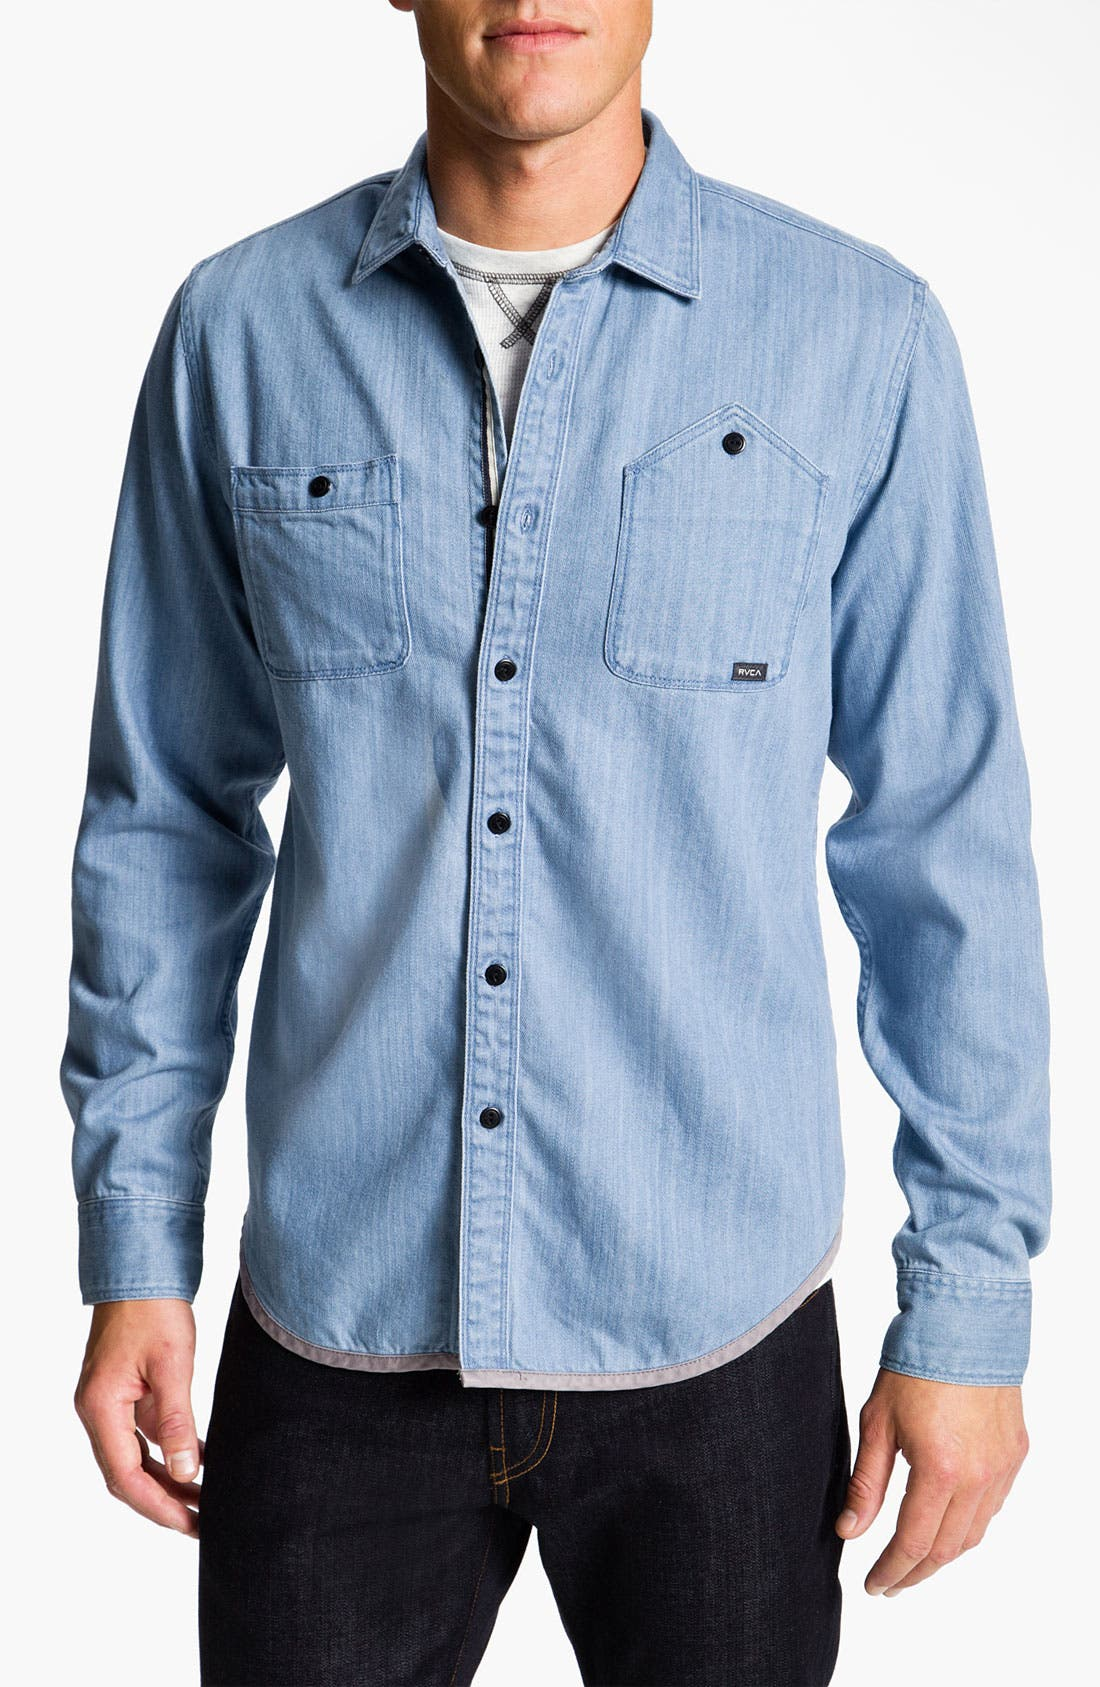 Alternate Image 1 Selected - RVCA 'Bound' Chambray Woven Shirt